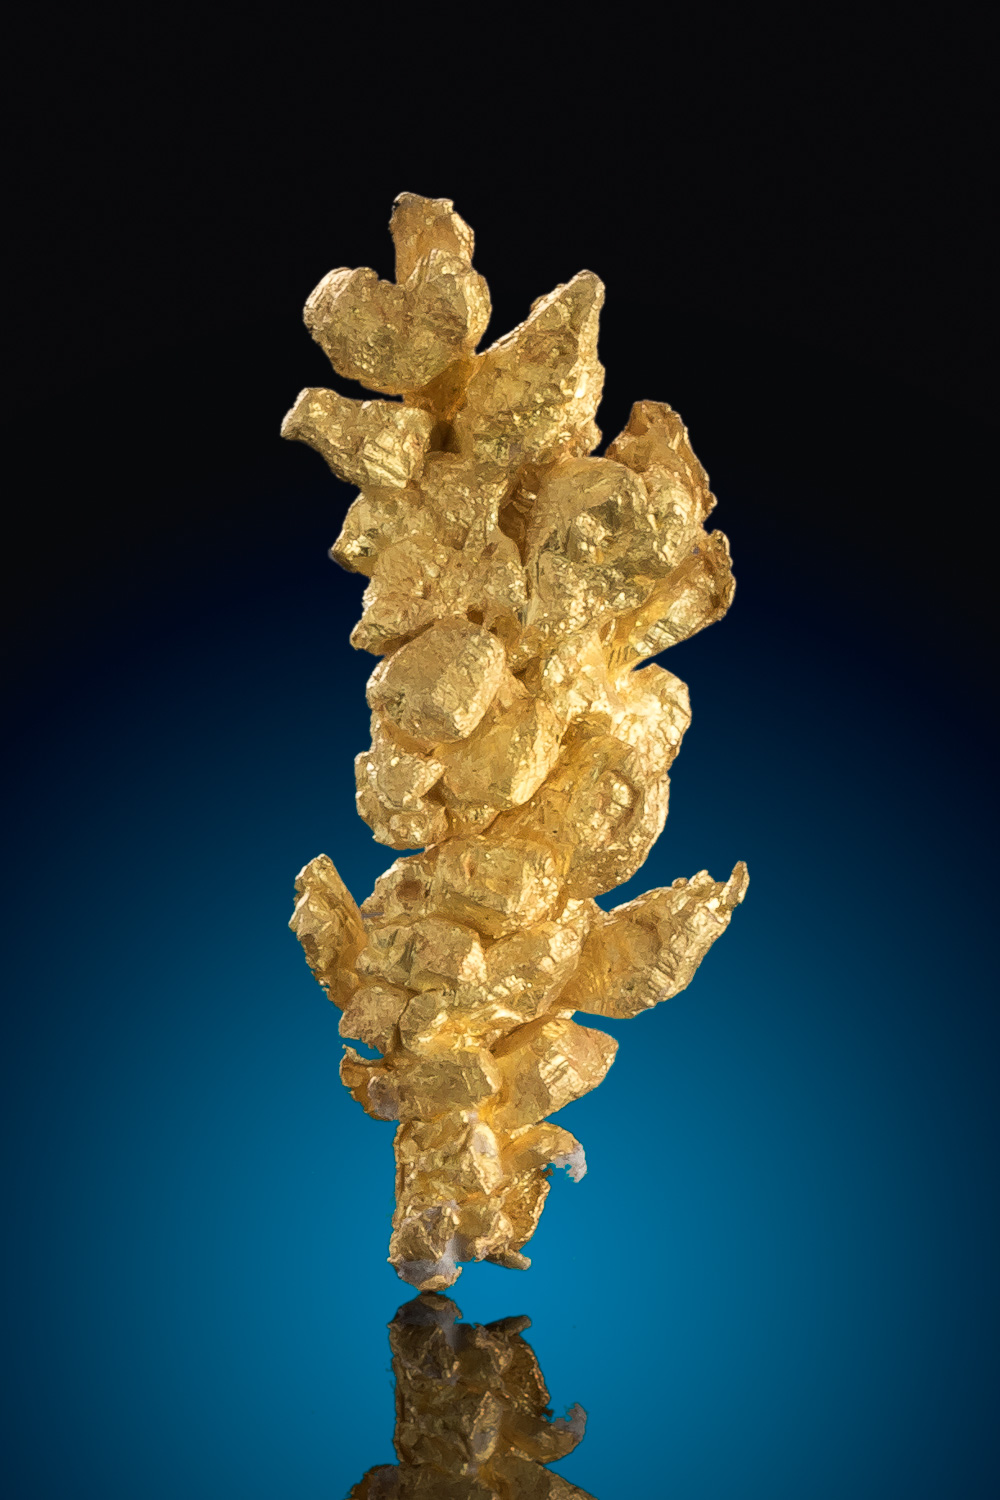 A tower of crystalized gold gold crystal from California